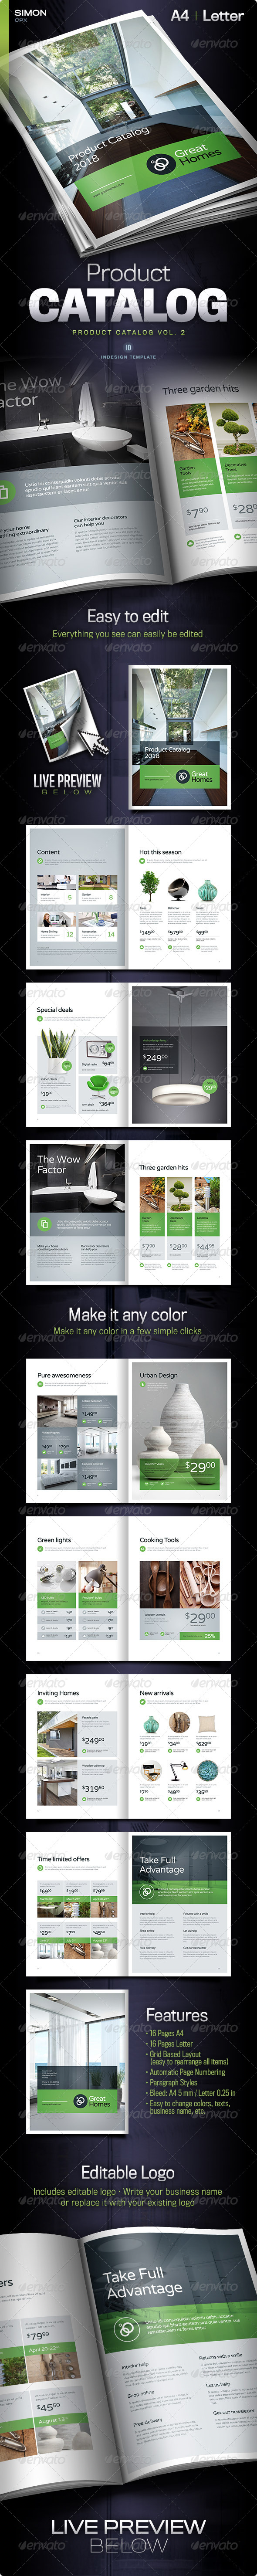 GraphicRiver Product Catalog Vol 2 7066026